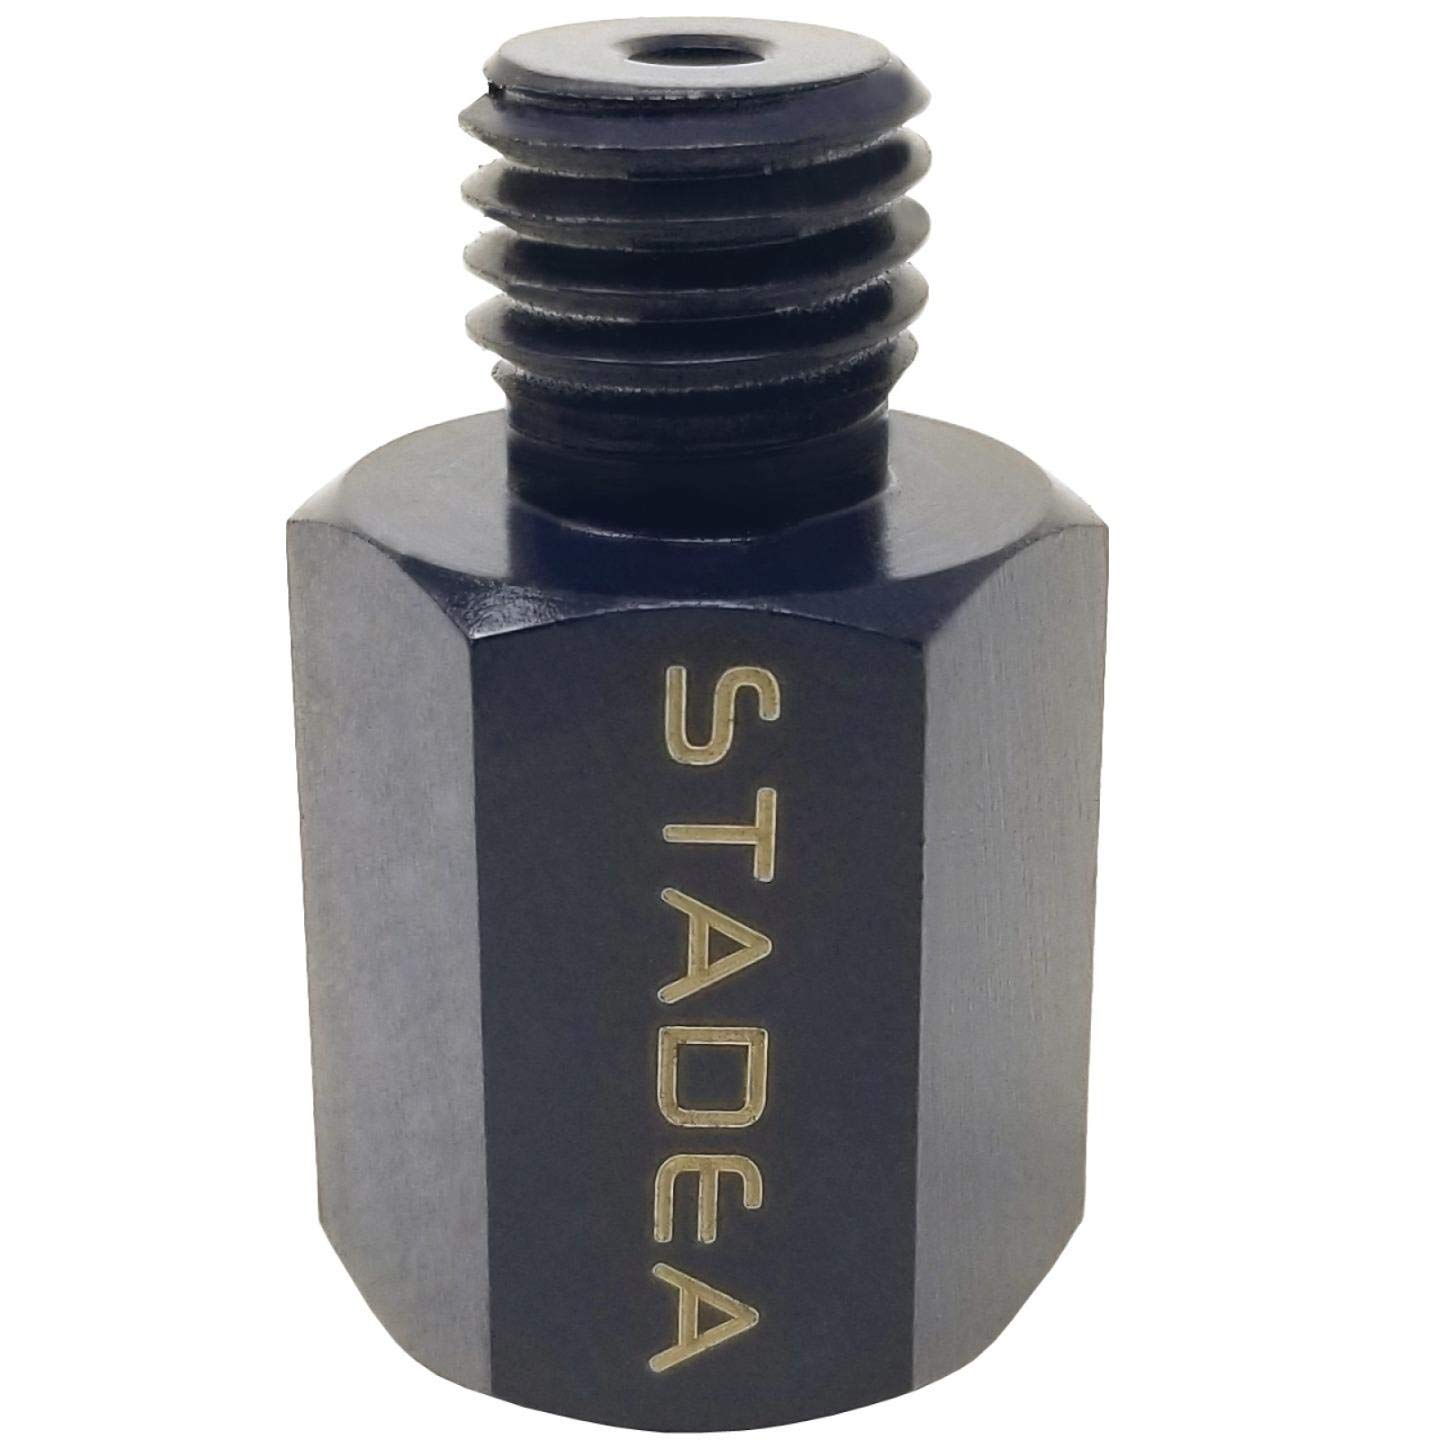 """Stadea ADC102K Adapter 5/8"""" 11 Female to M14 Male"""